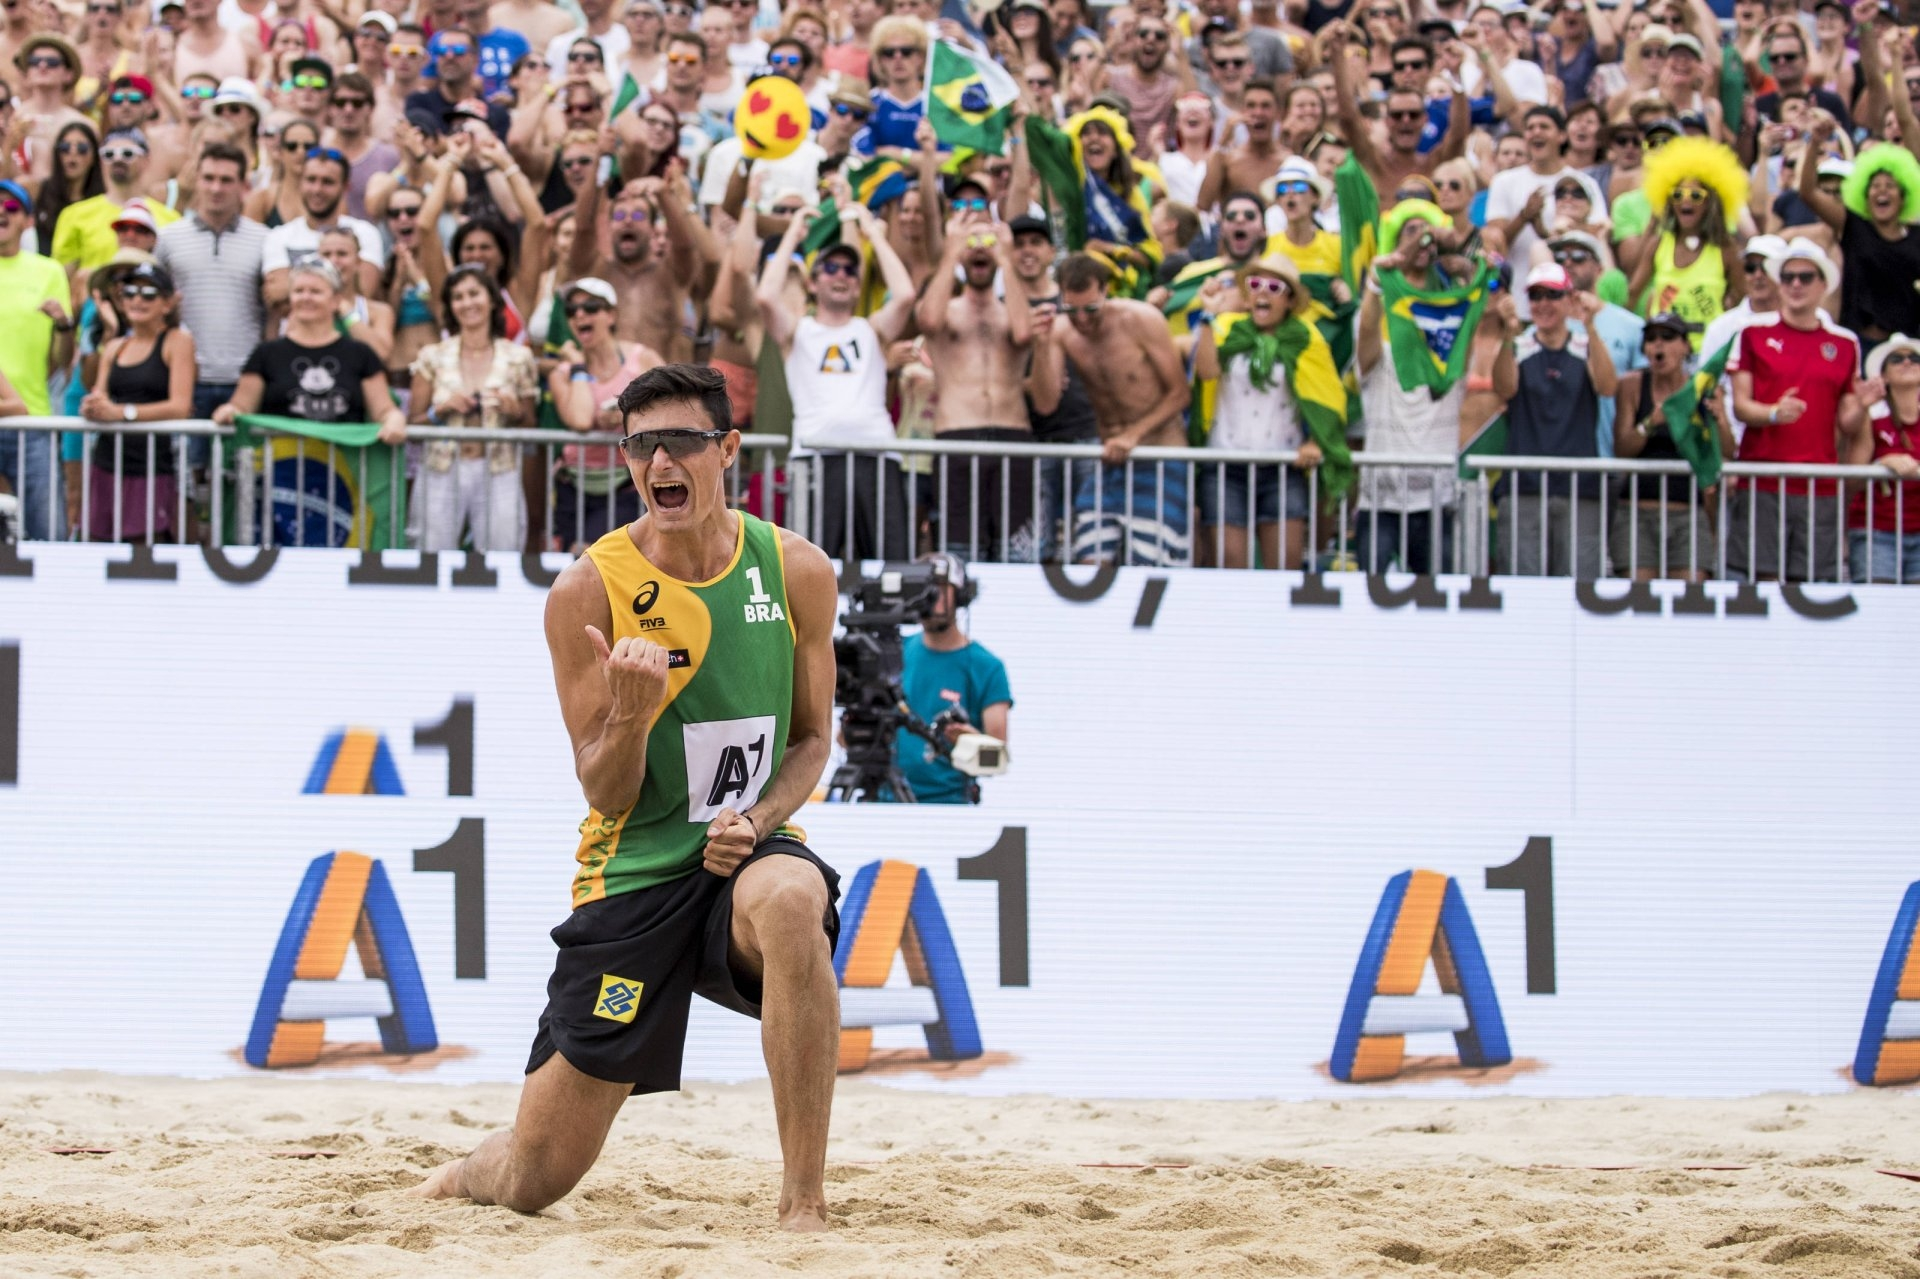 Last season Andre Loyola made history by becoming beach volleyball's youngest world champion